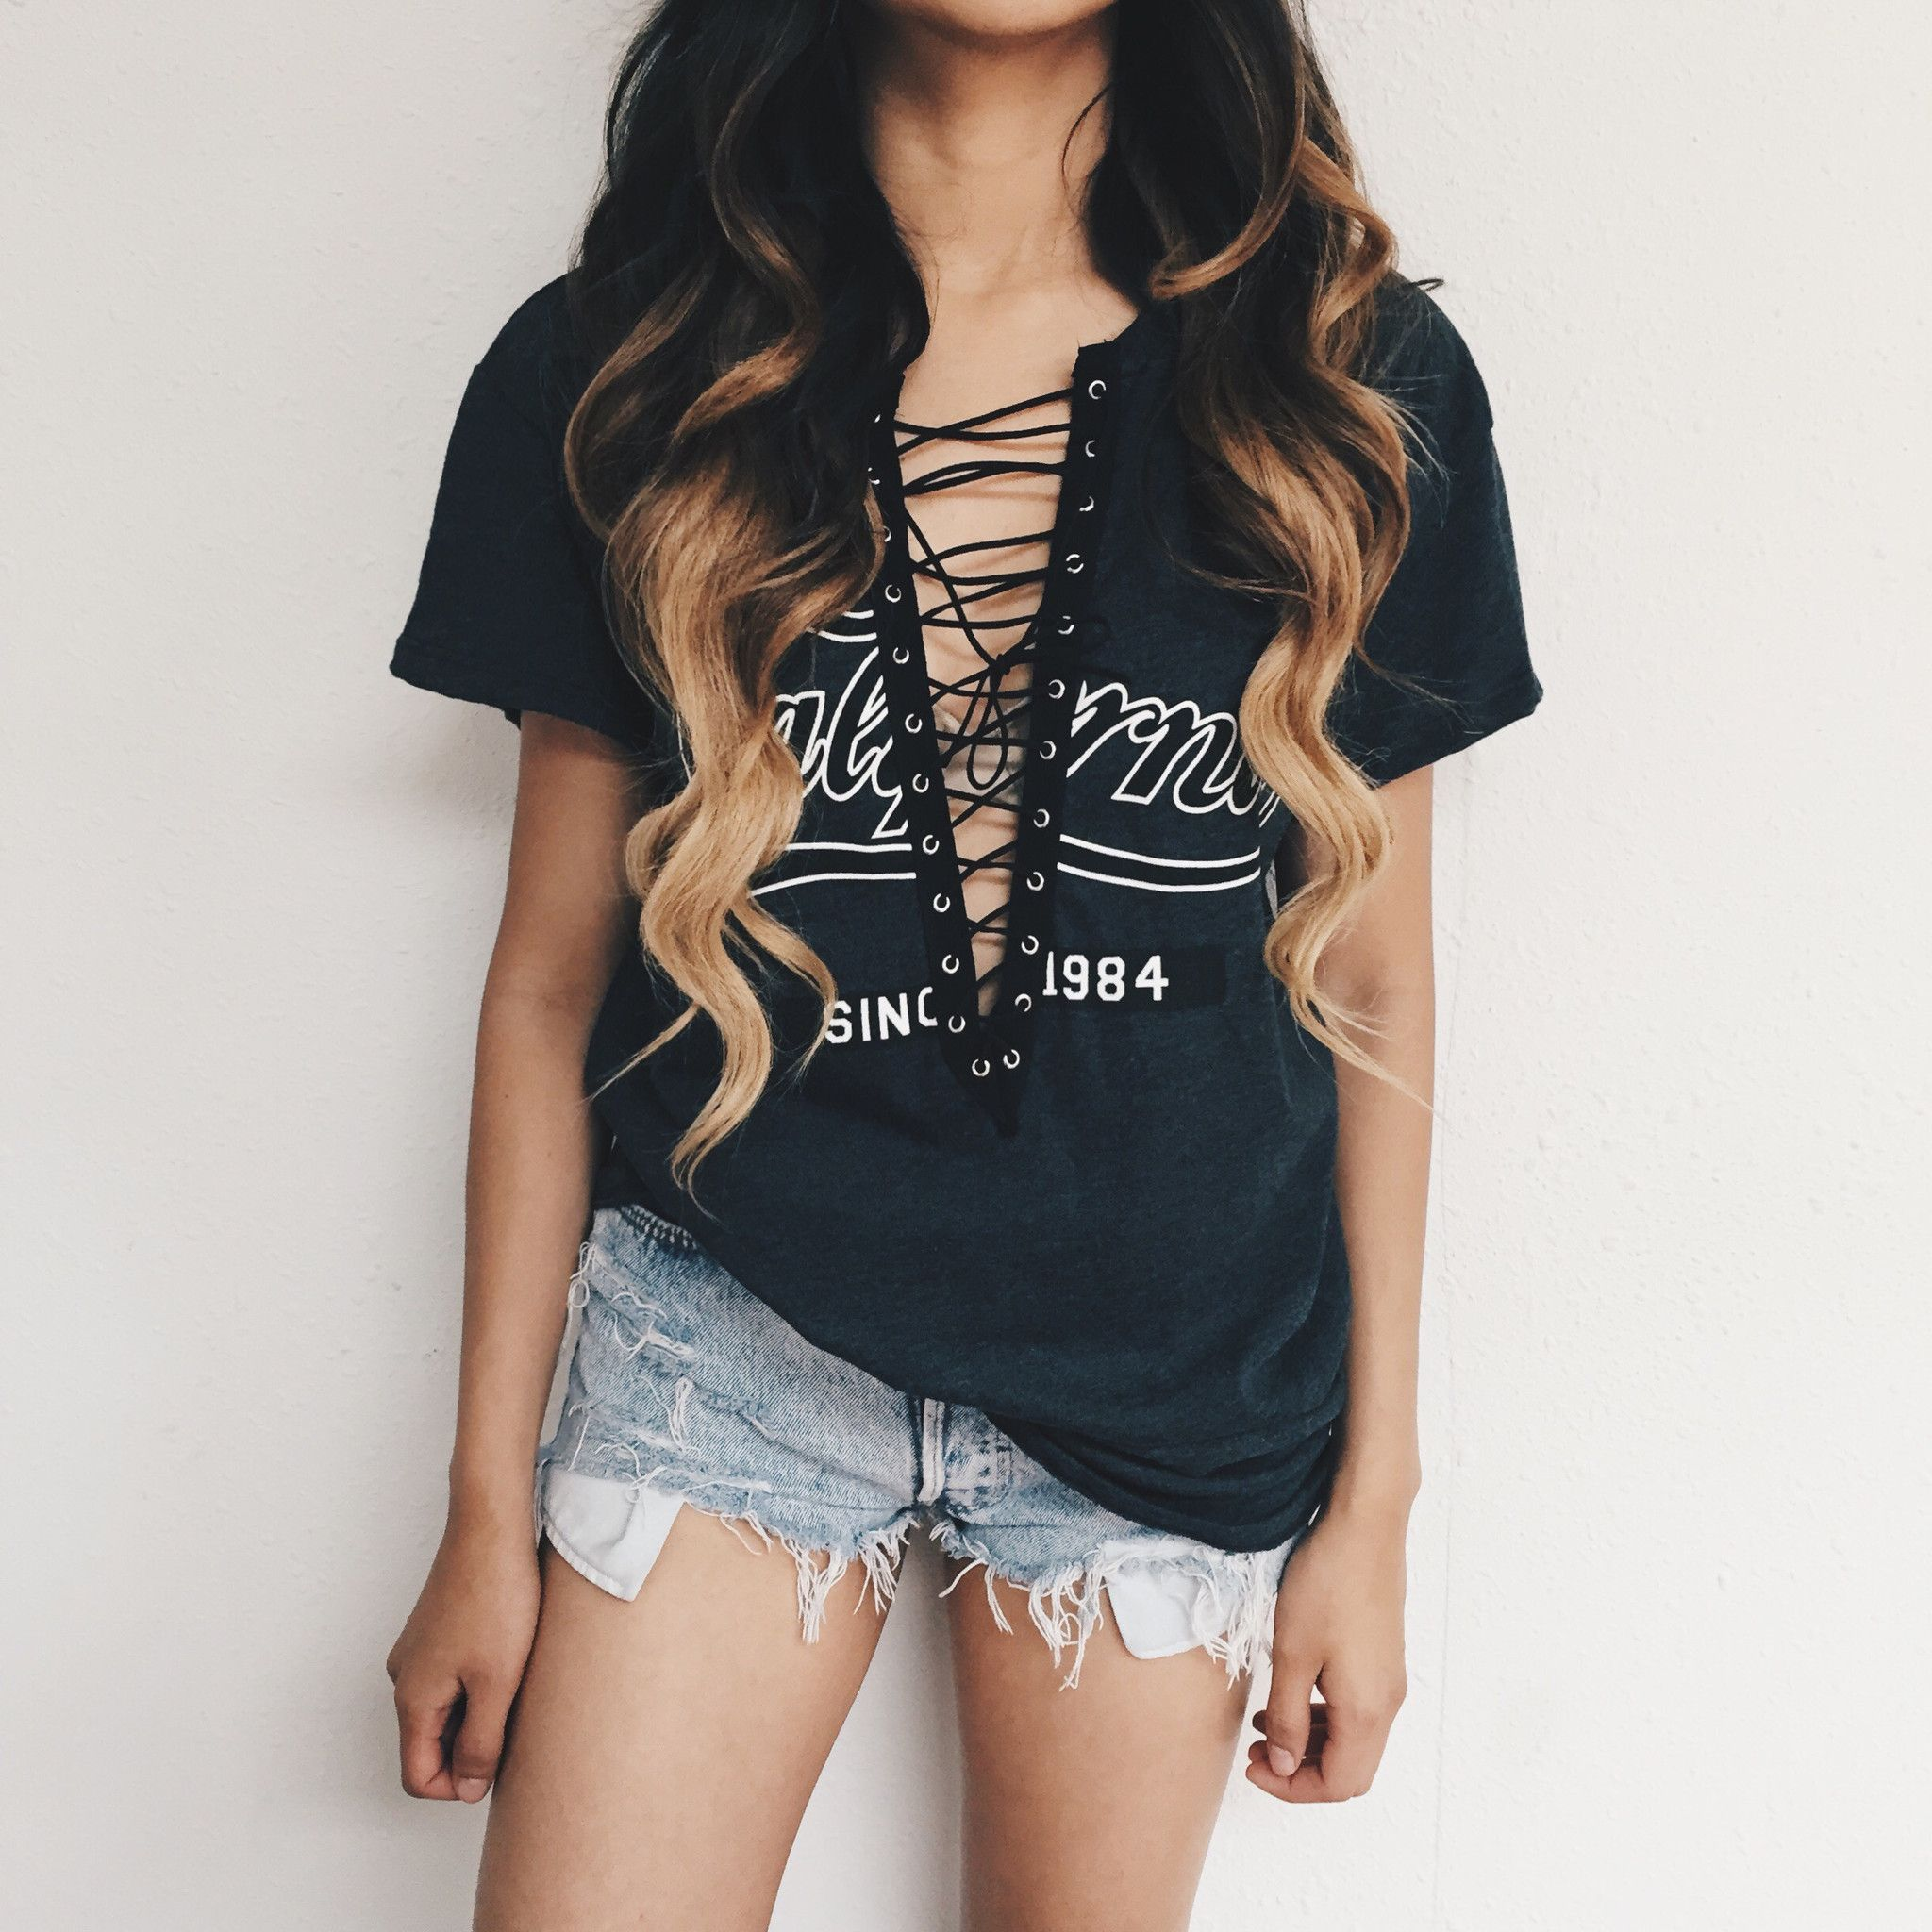 Black t shirt with lace - Janel California Lace T Shirt Black